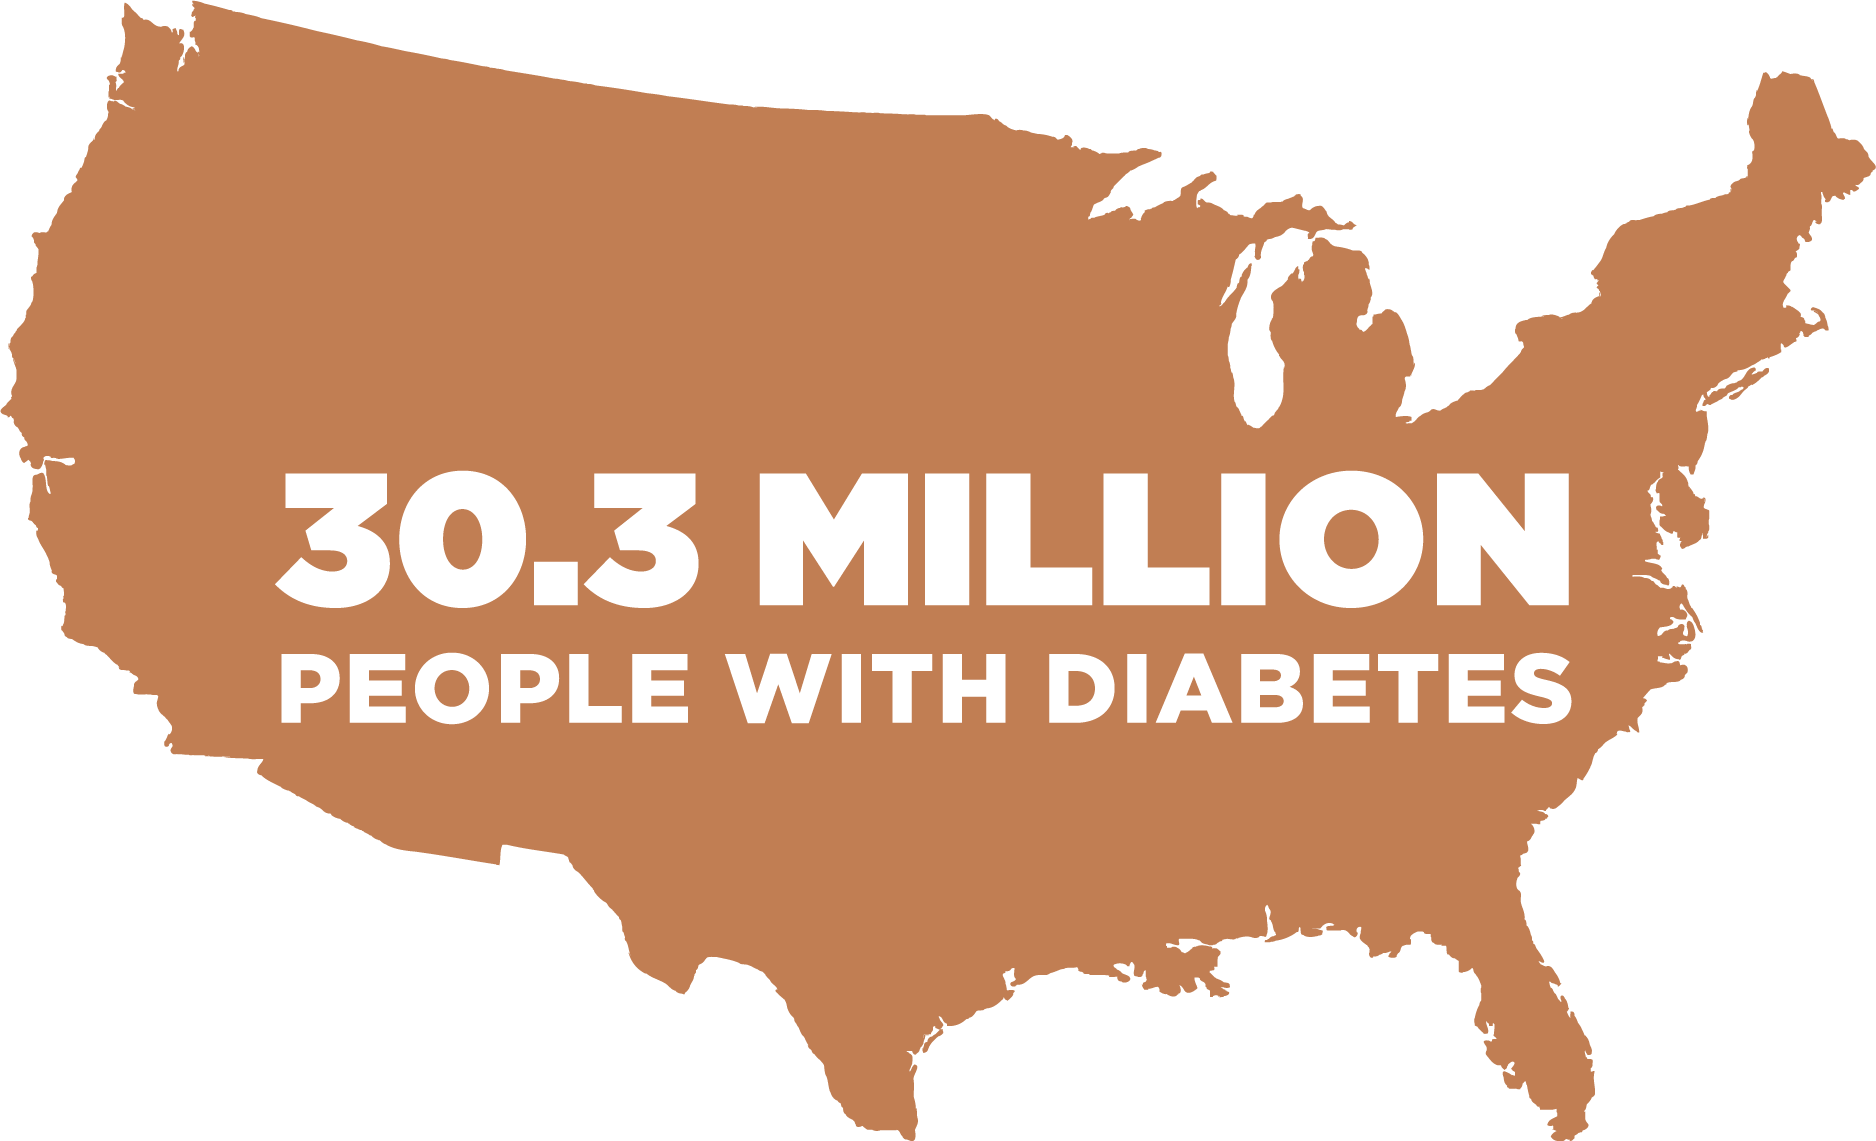 USA Map showing the 30.3 Million people with diabetes in the country.